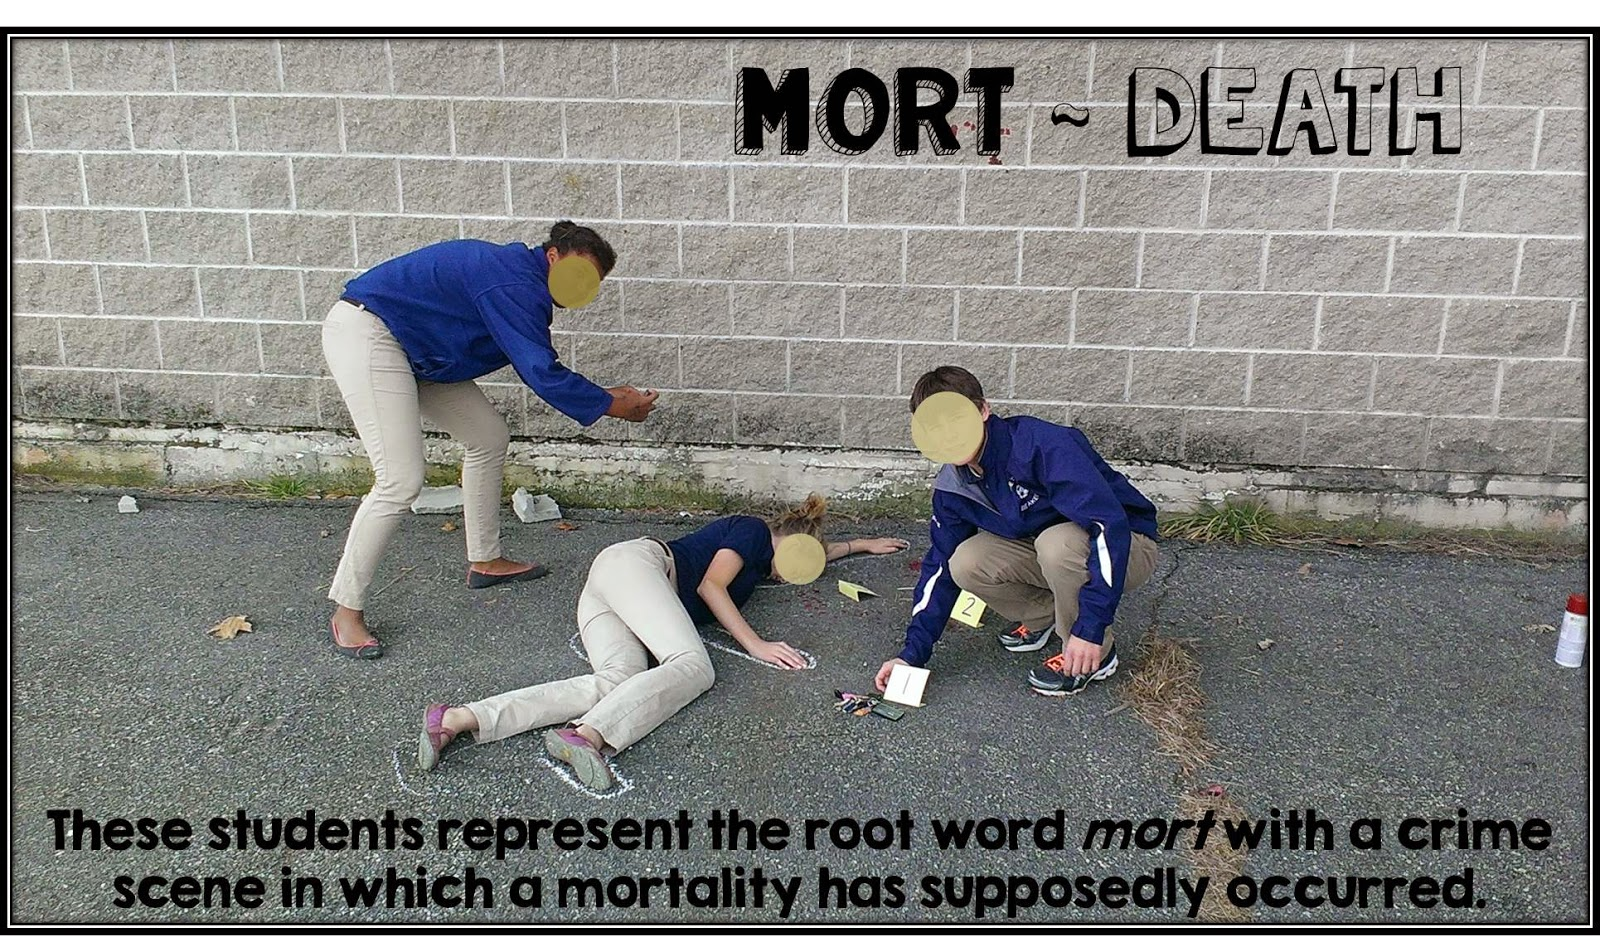 These students represent the root word mort with a crime scene in which a mortality has supposedly occured.